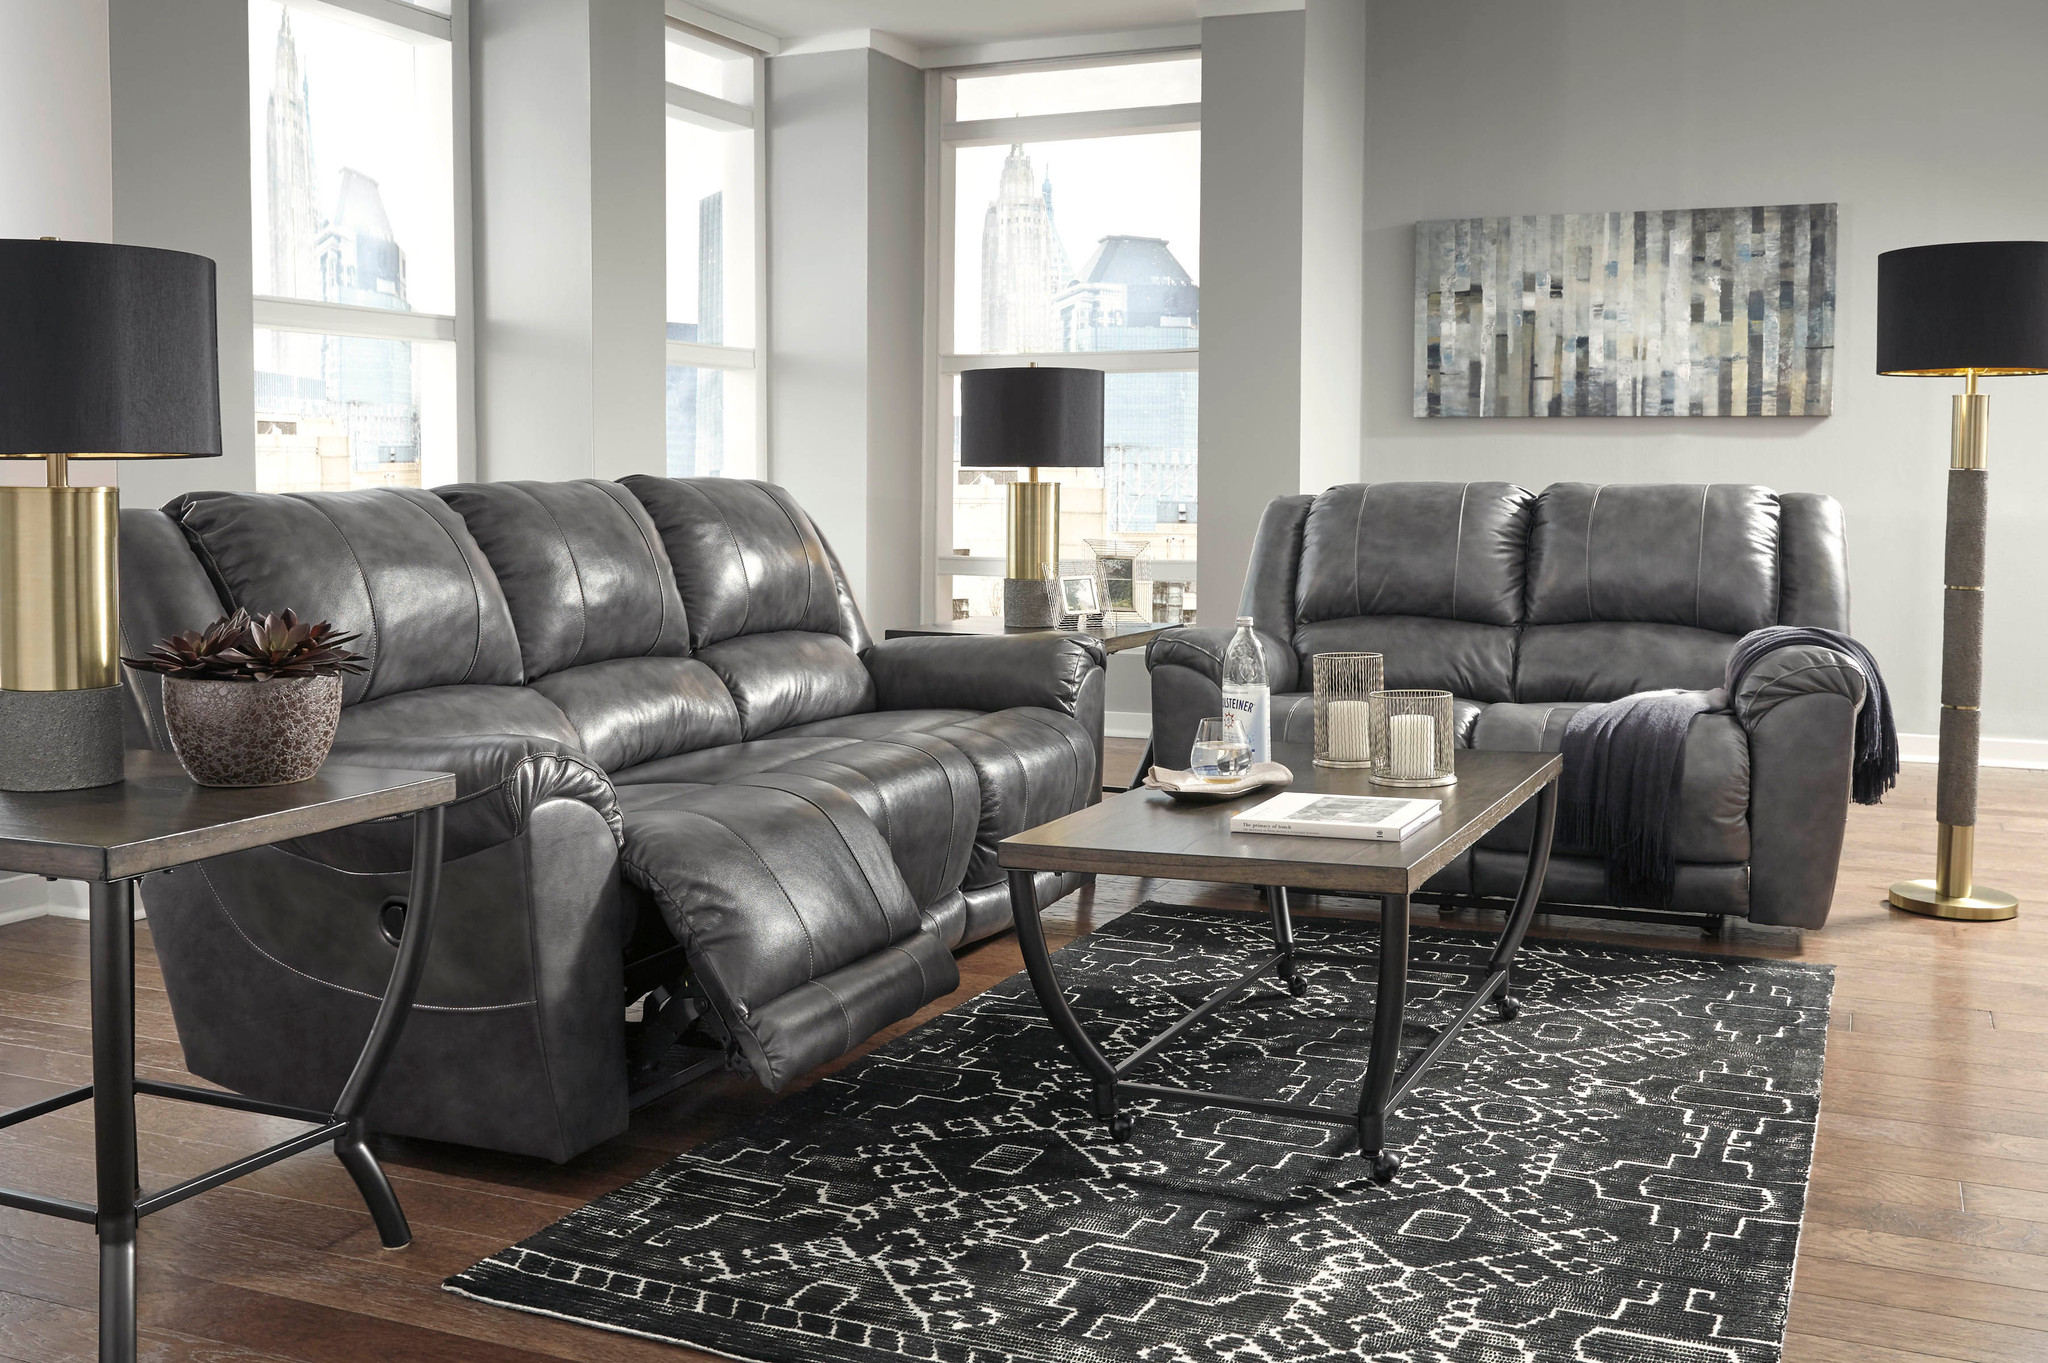 Enjoyable 2Pc Persiphone Charcoal Sofa And Loveseat Reclining Set Download Free Architecture Designs Scobabritishbridgeorg